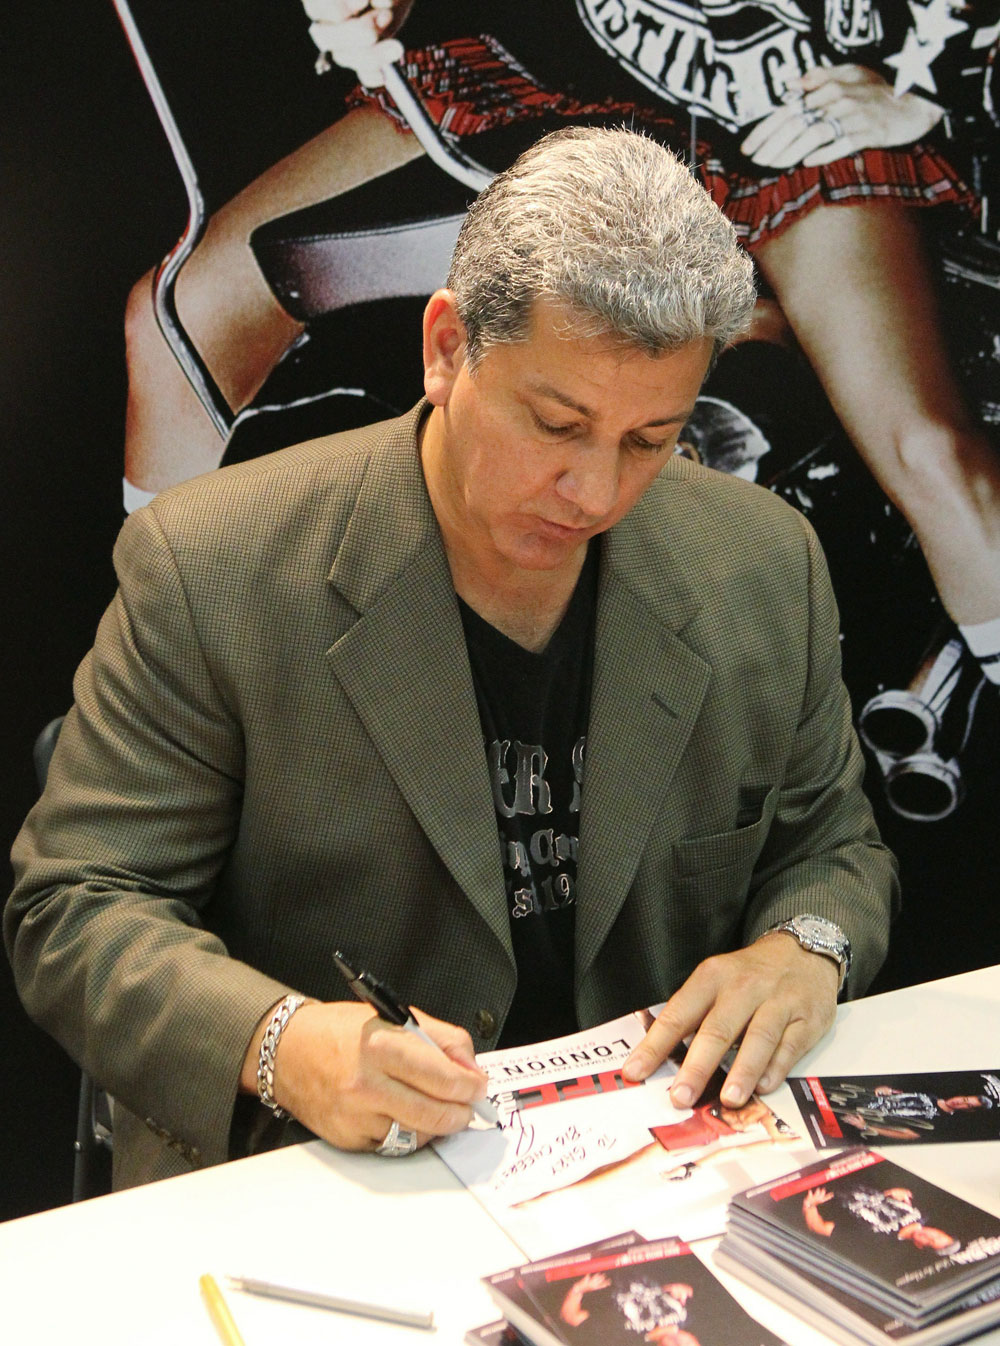 UFC announces Bruce Buffer signs an autograph for a fan.